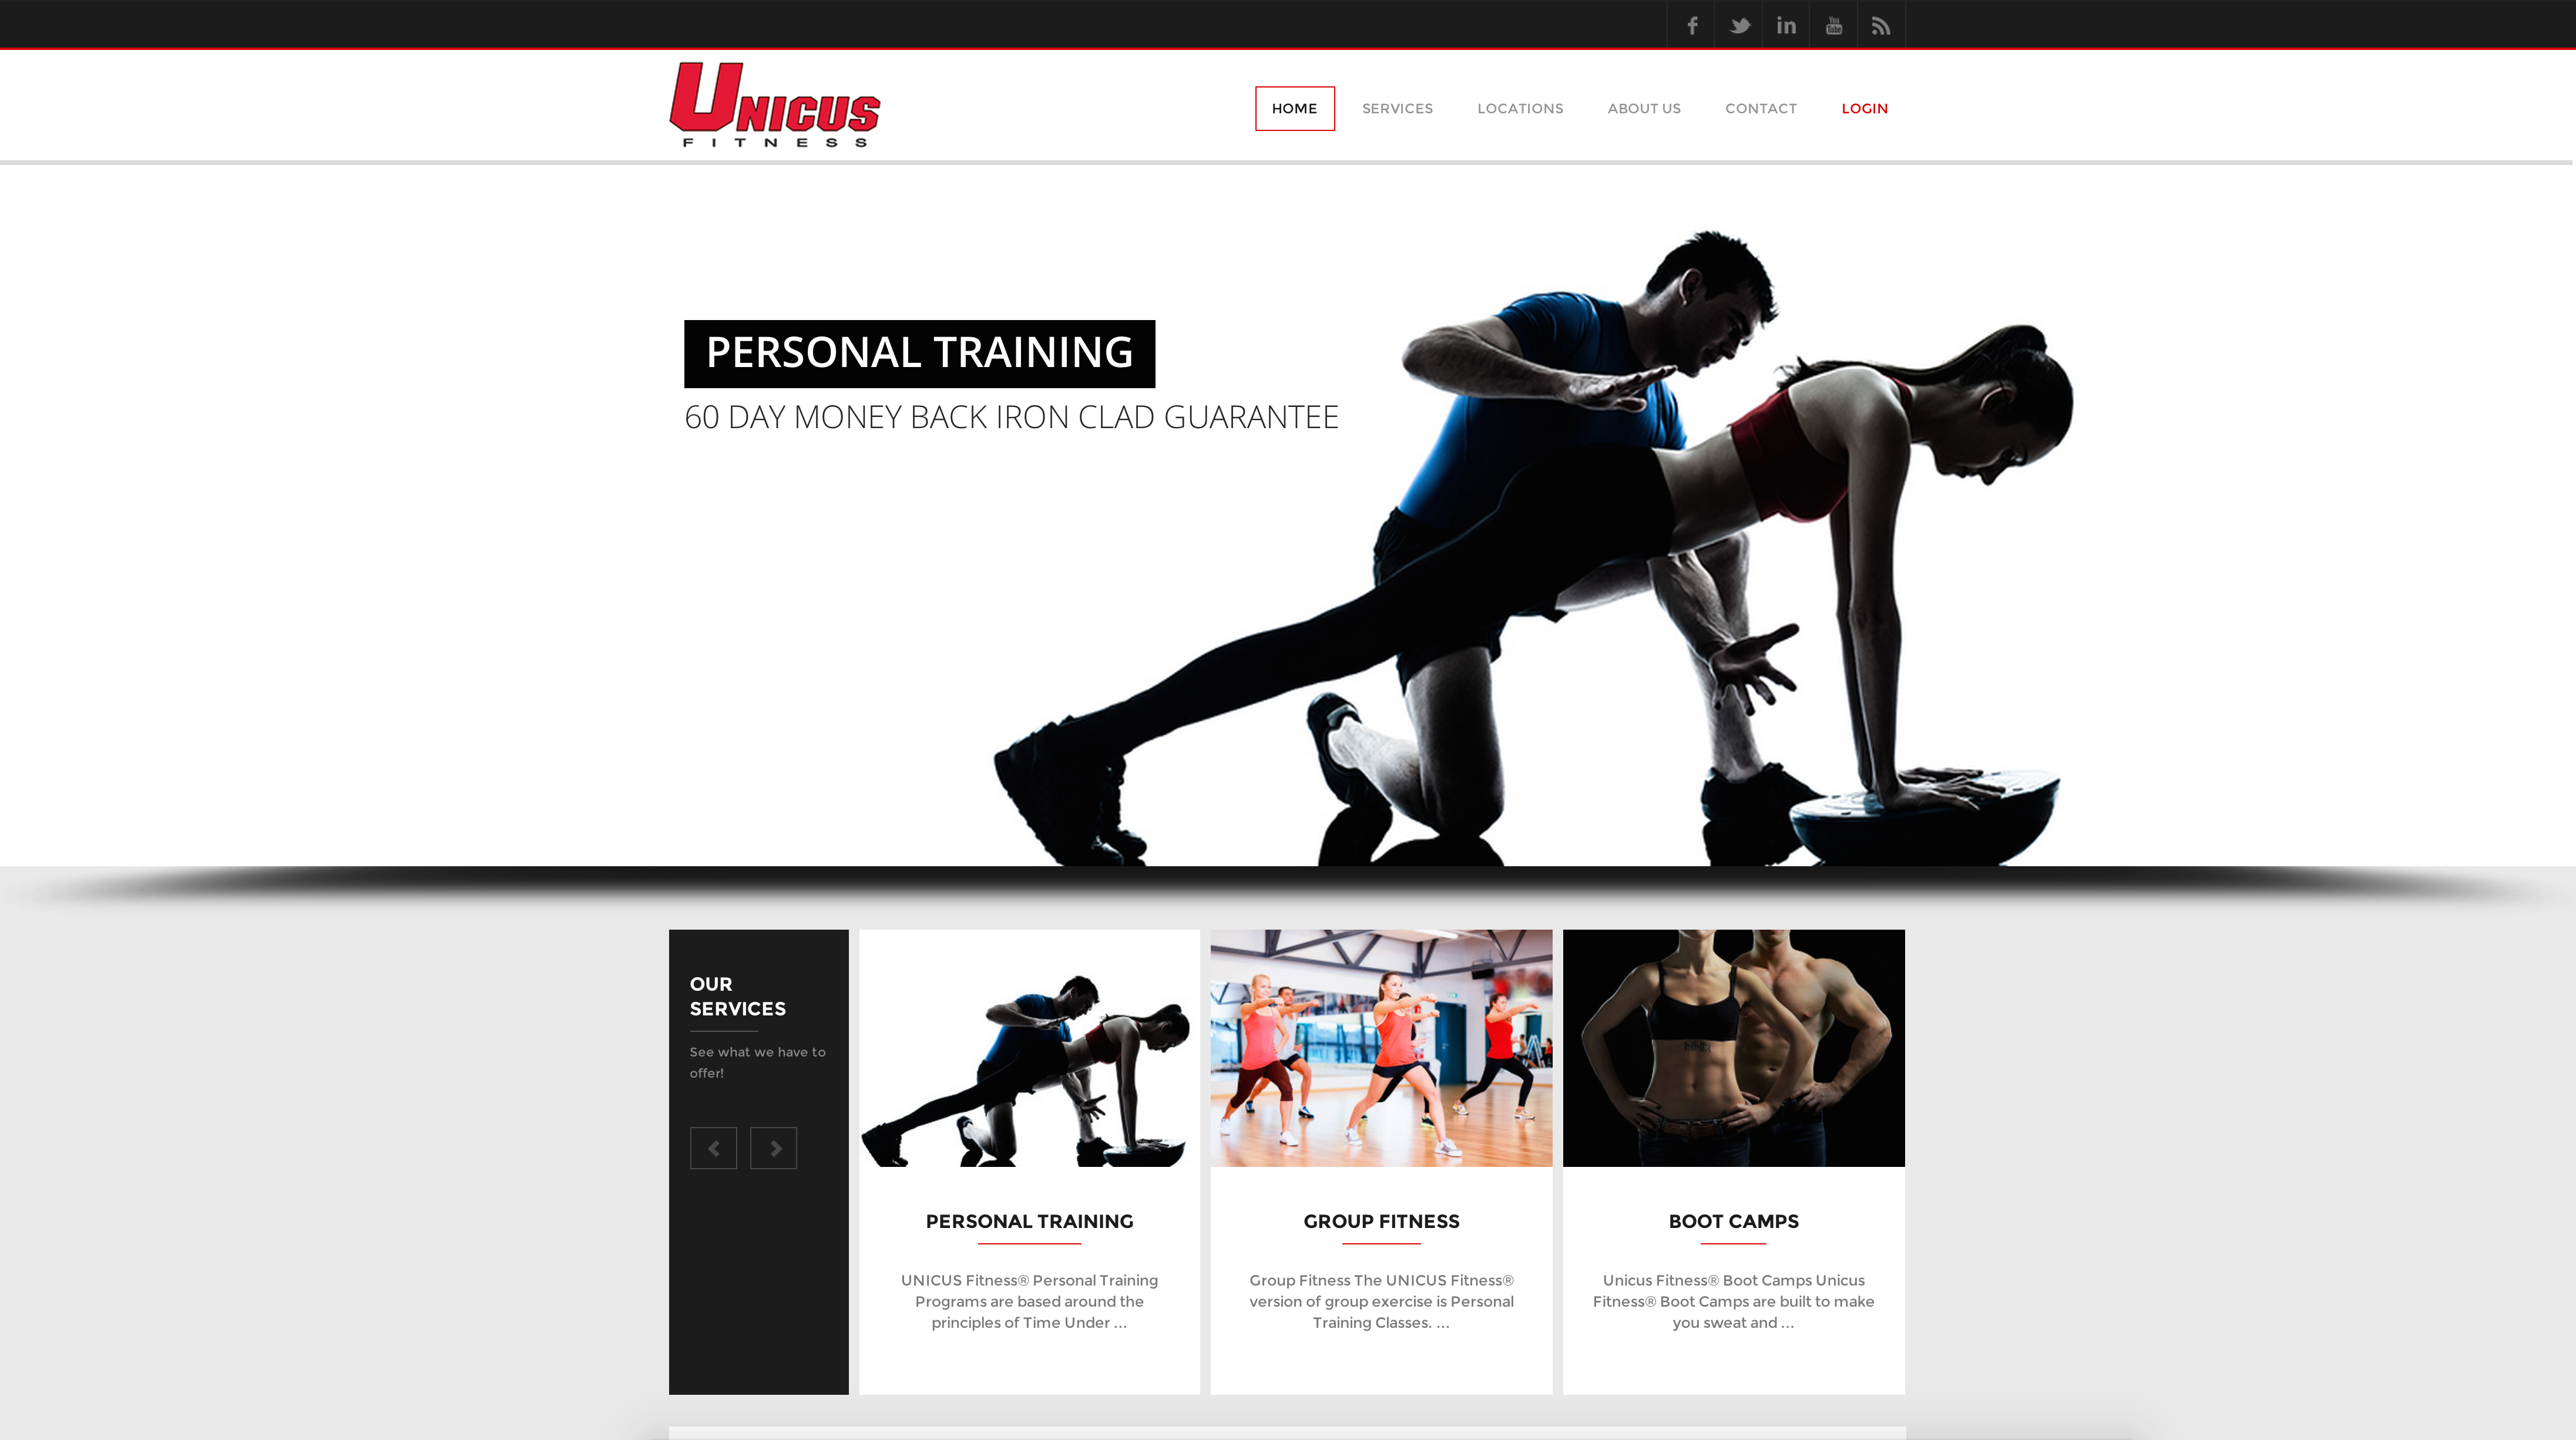 Image of Unicus Fitness website design home page with personal trainer